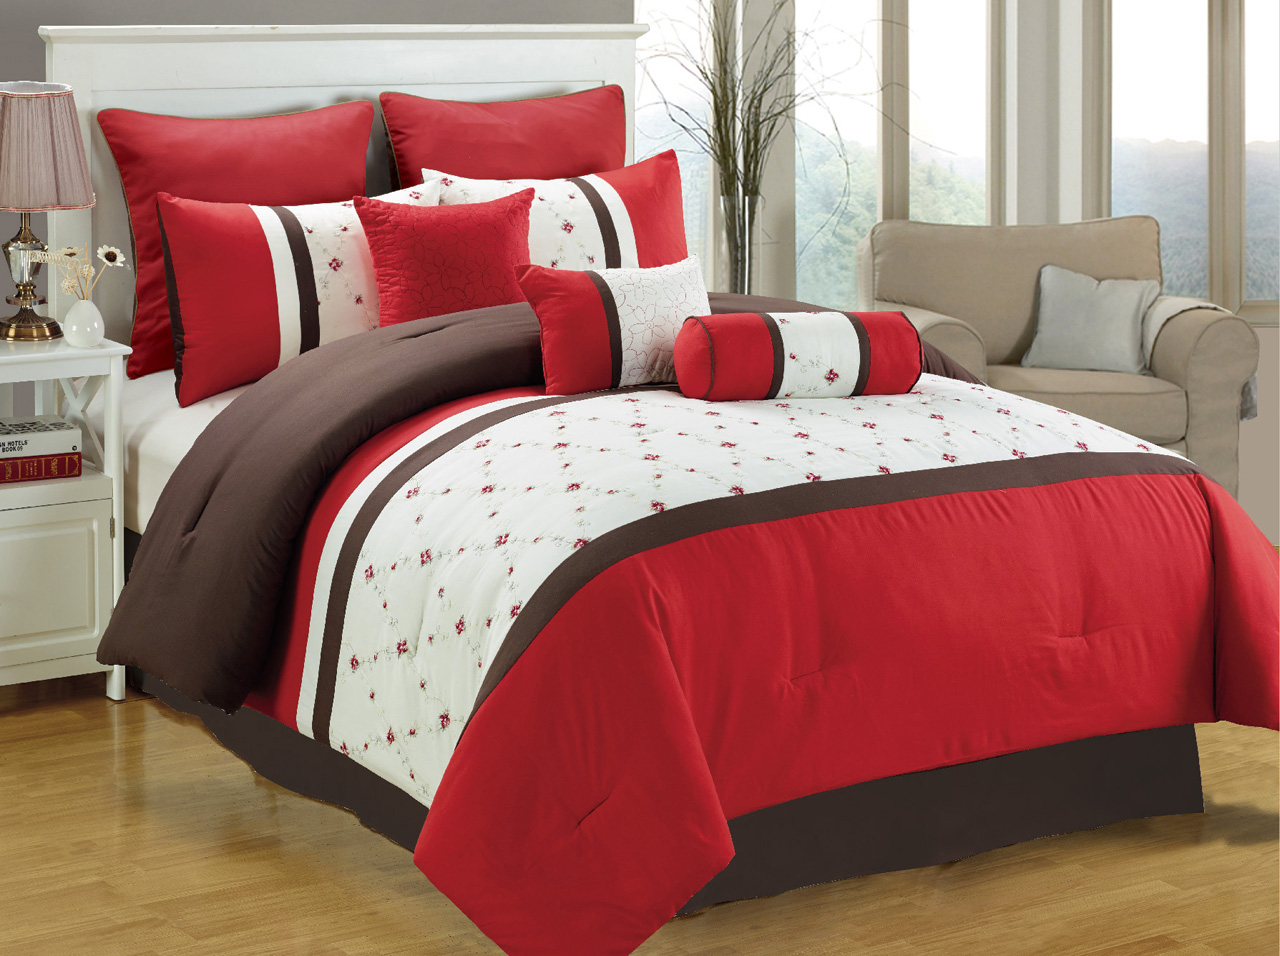 Red And White Bedding Excellent Red And White Bedding